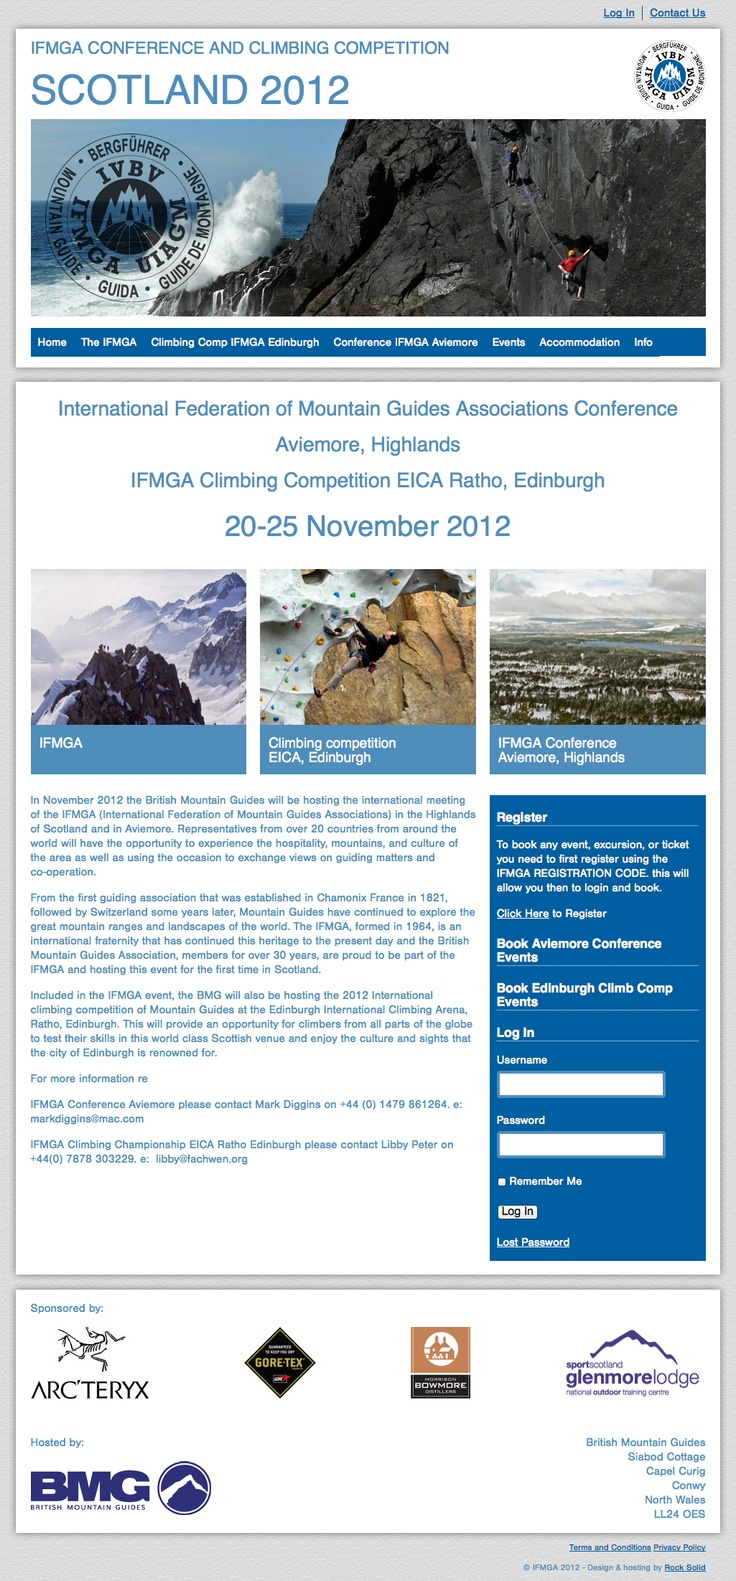 This is a website we created for the IFMGA (International Federation of Mountain Guides Associations), for their 2012 conference in Aviemore. The site uses Wordpress and Event Espresso, an event management plugin.